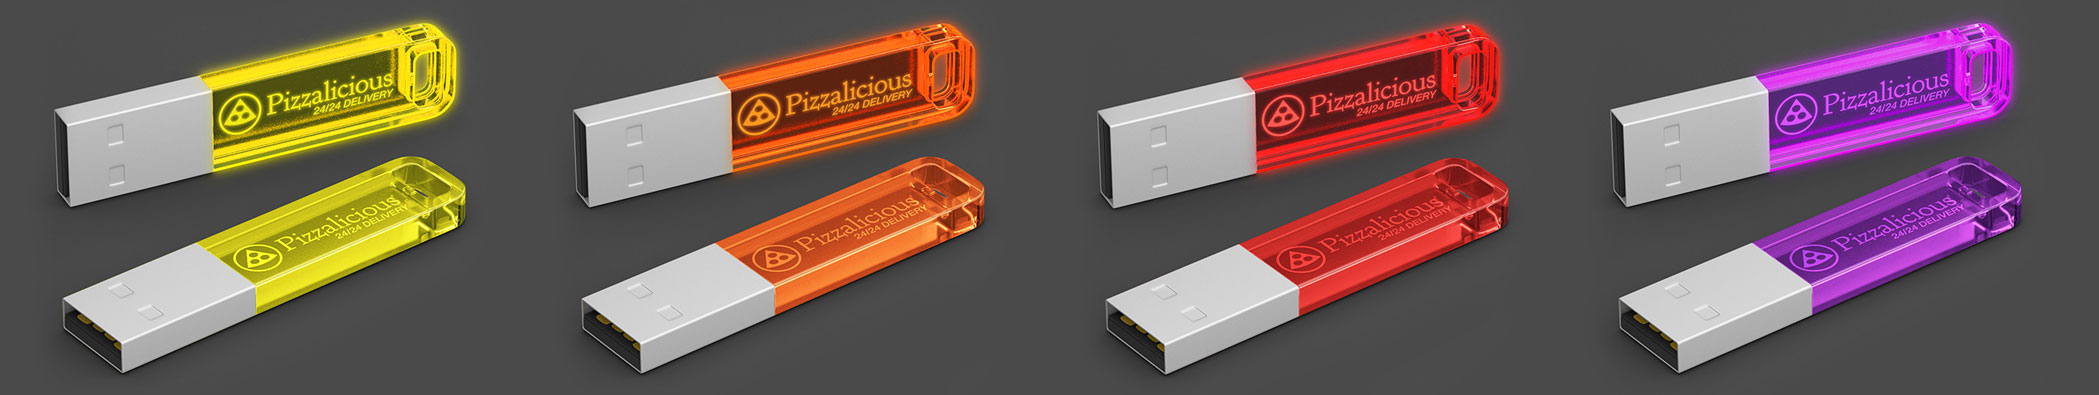 werbeartikel-usb-stick-Iron-Candy